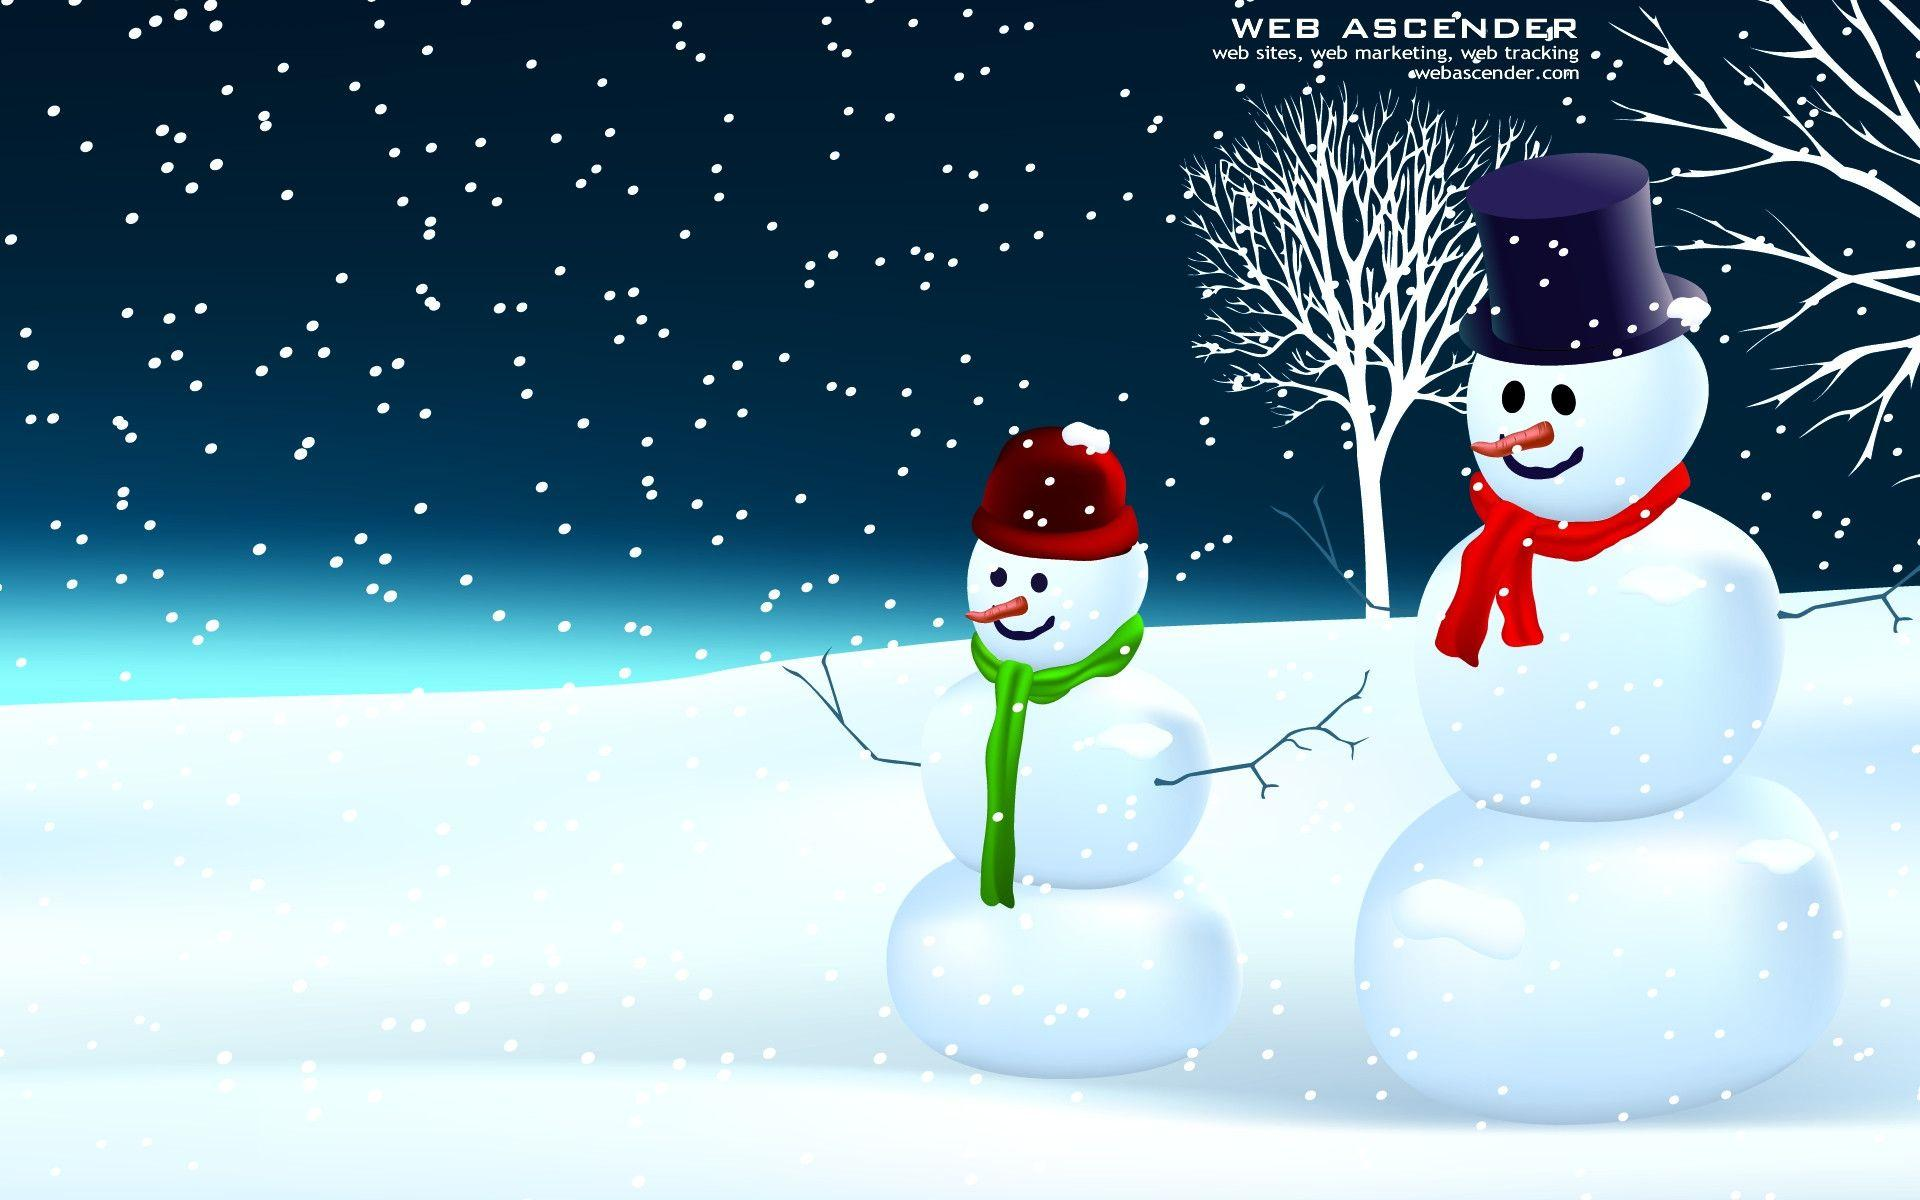 images of snowman desktop background - #spacehero